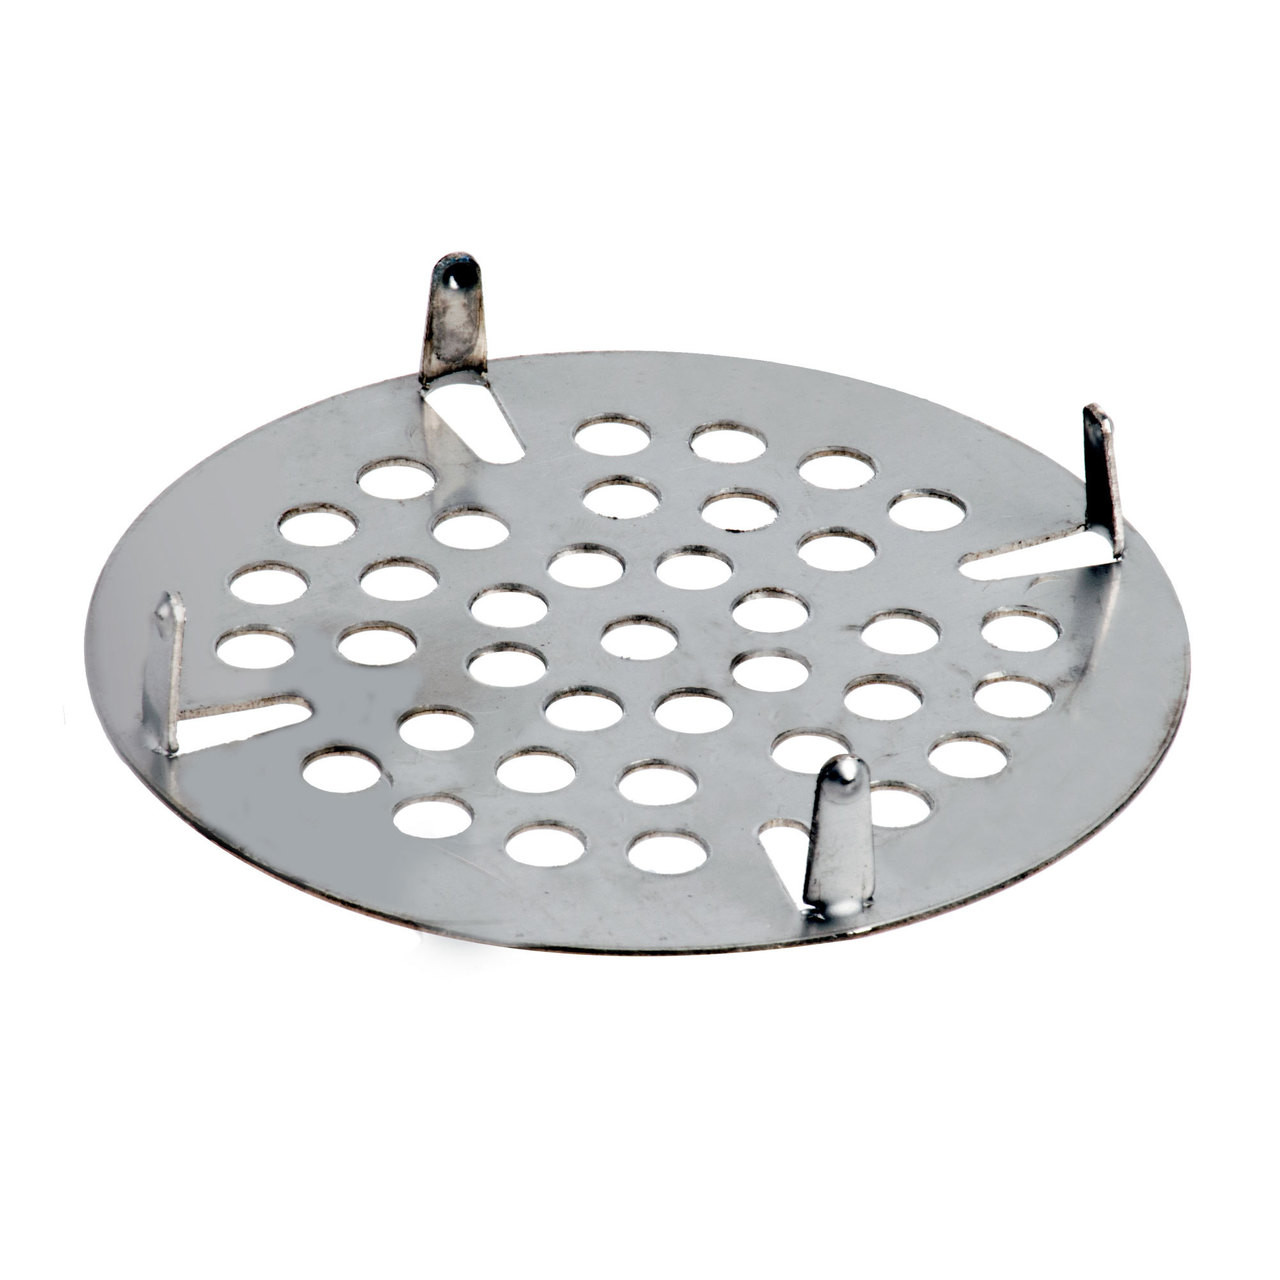 3 1 2 Flat Strainer For Kitchen Sink Drain Opening